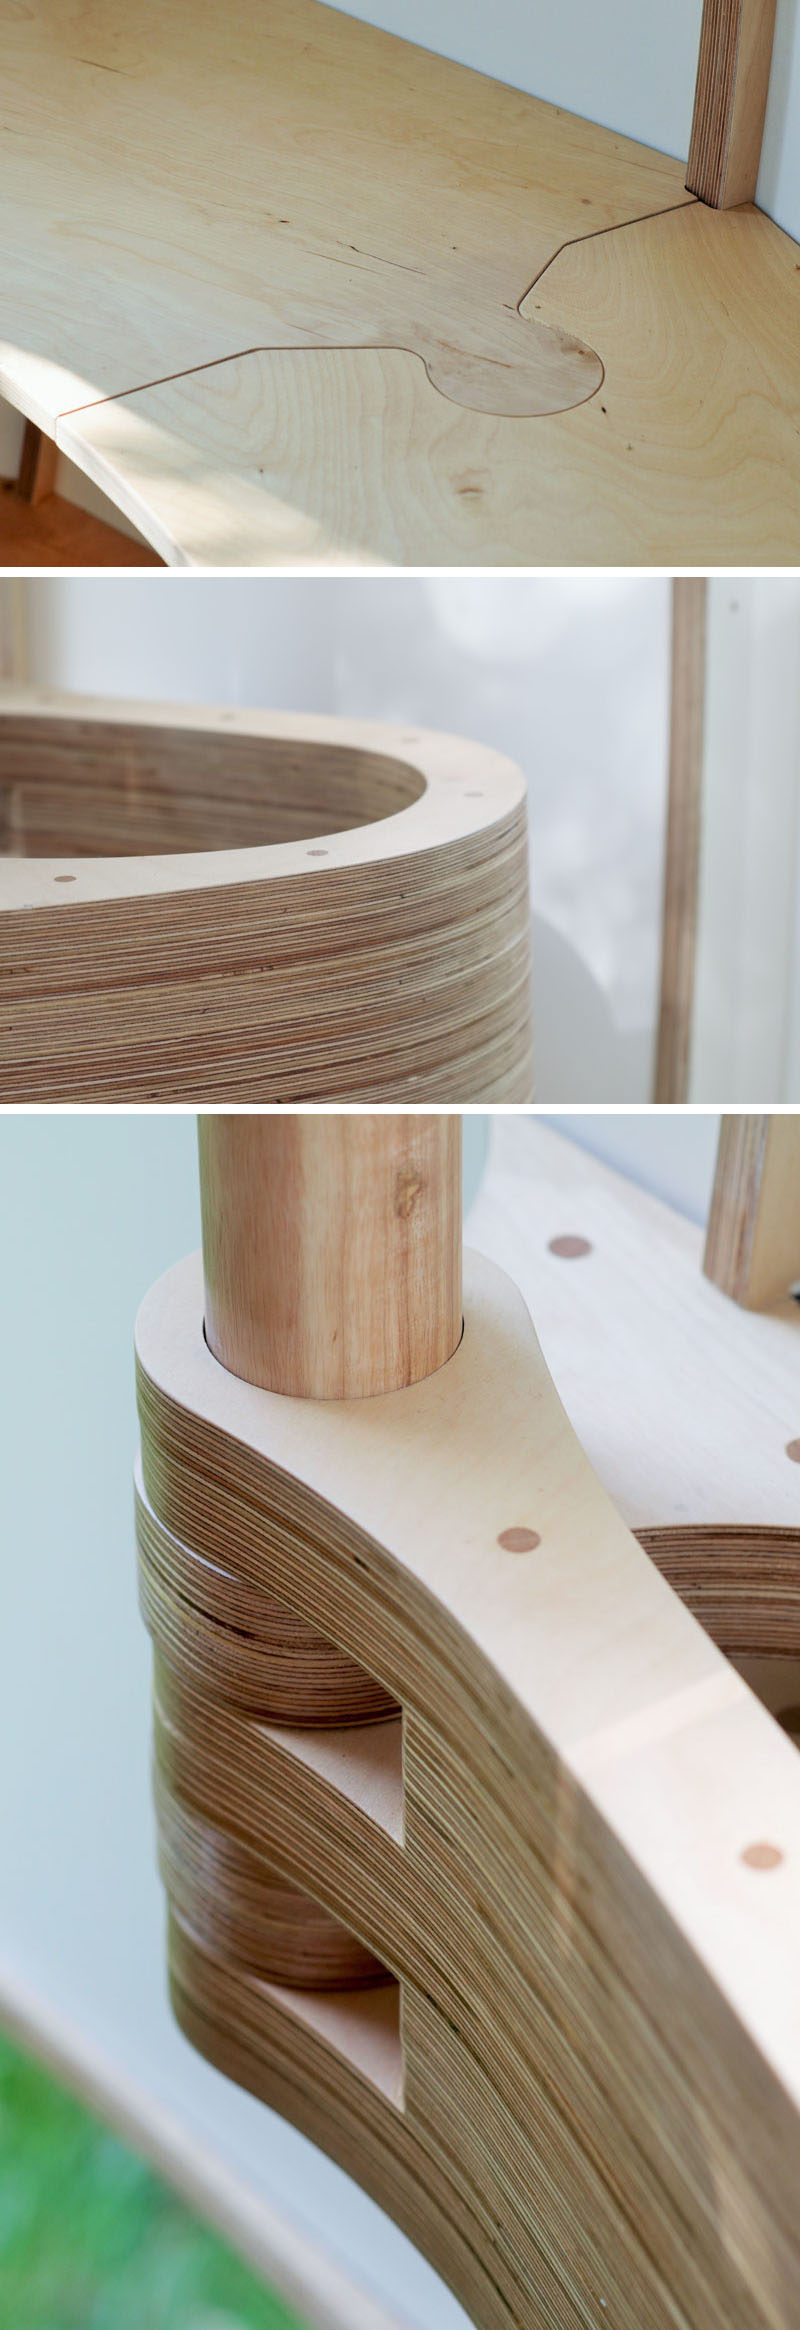 Examples of CNC milled woodwork featured in a pod-like backyard studio. #CNC #Woodworking